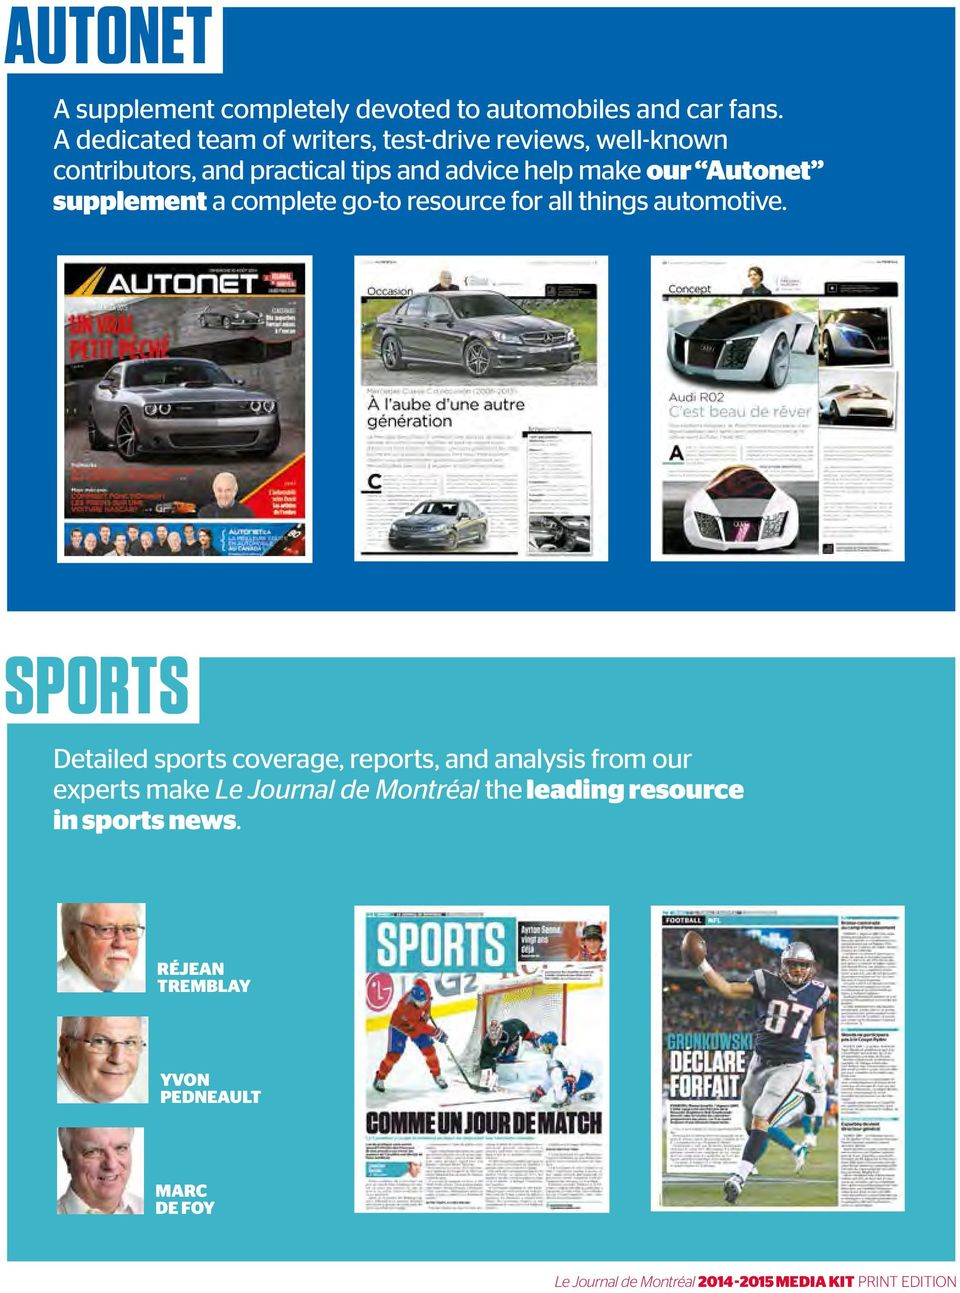 make our Autonet supplement a complete go-to resource for all things automotive.